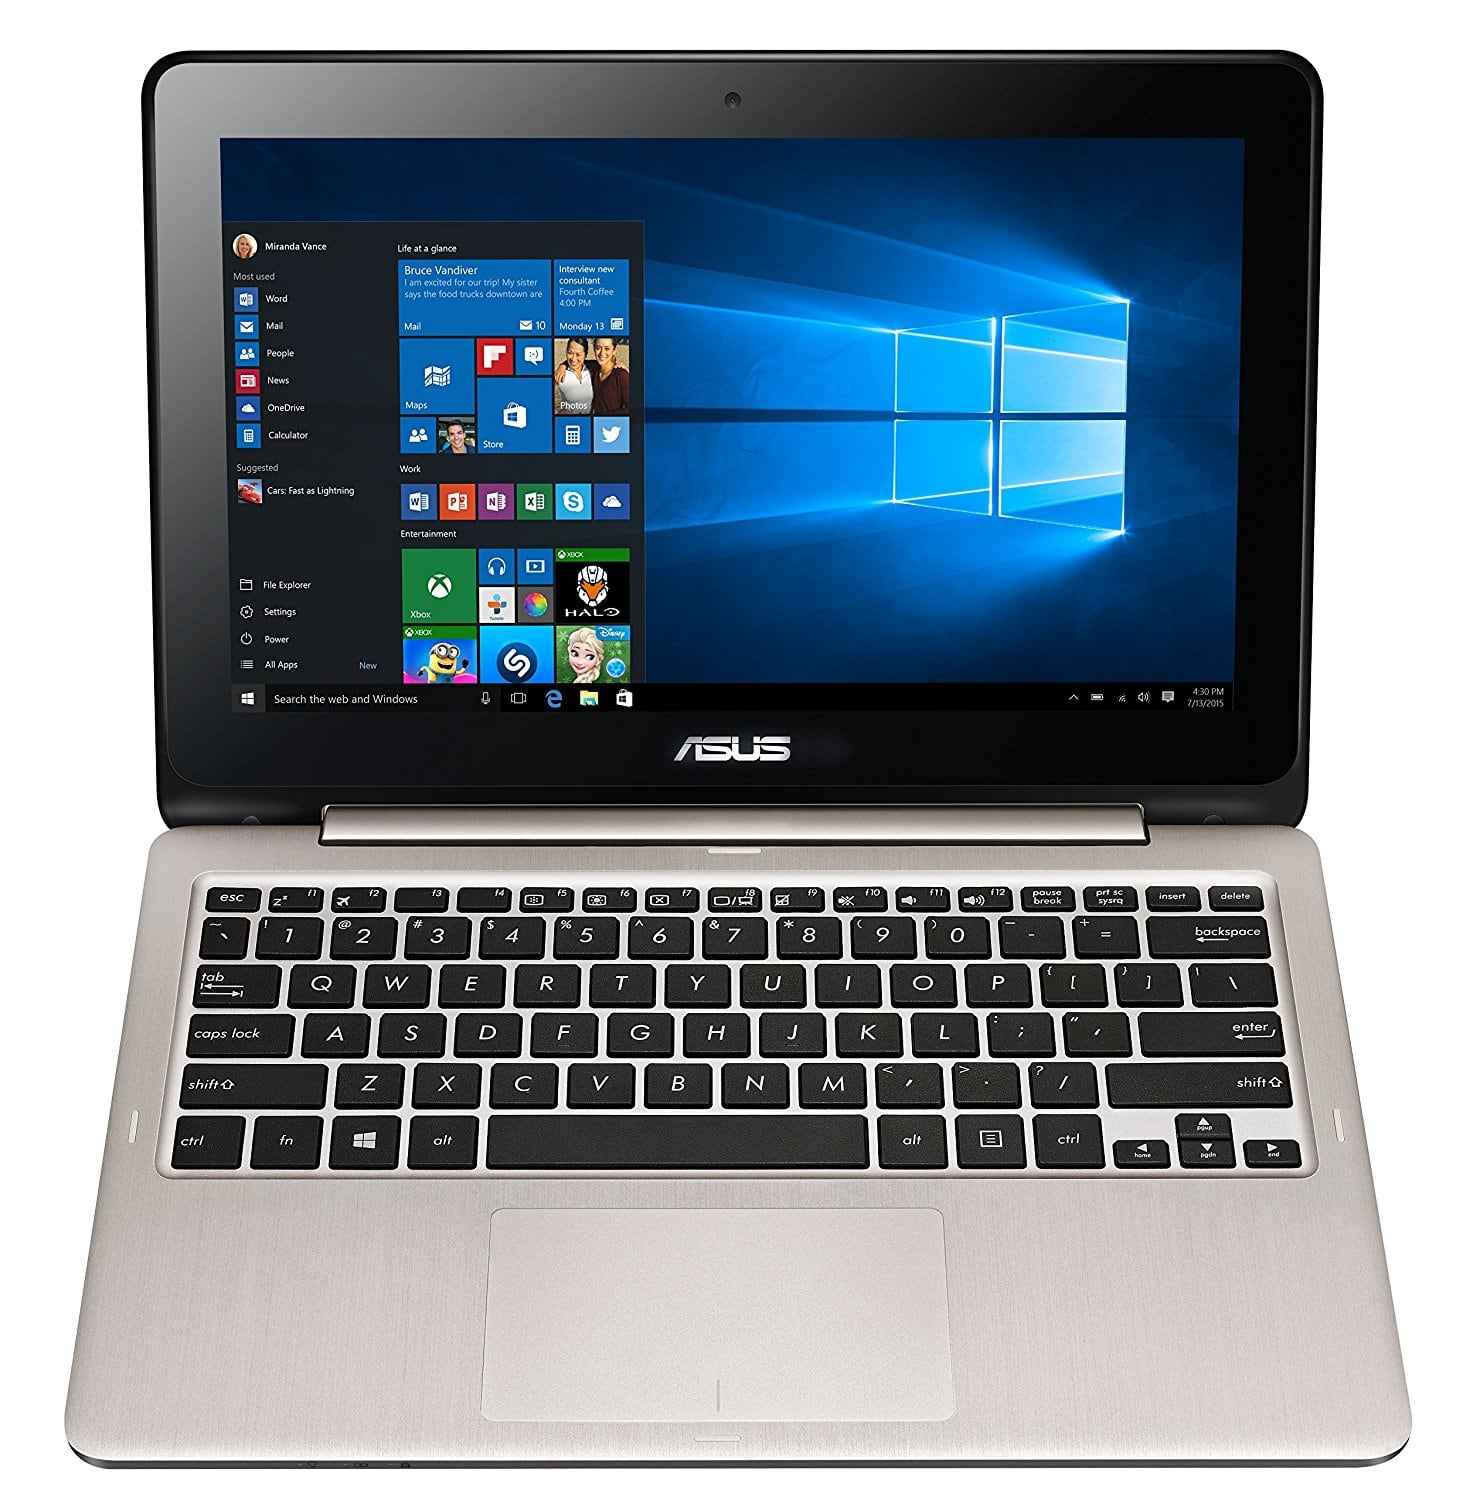 "ASUS VivoBook Laptop (11.6"" Full HD Touch, Celeron 2.48 GHz, 4GB, 32GB) $199 @Amazon + FS"